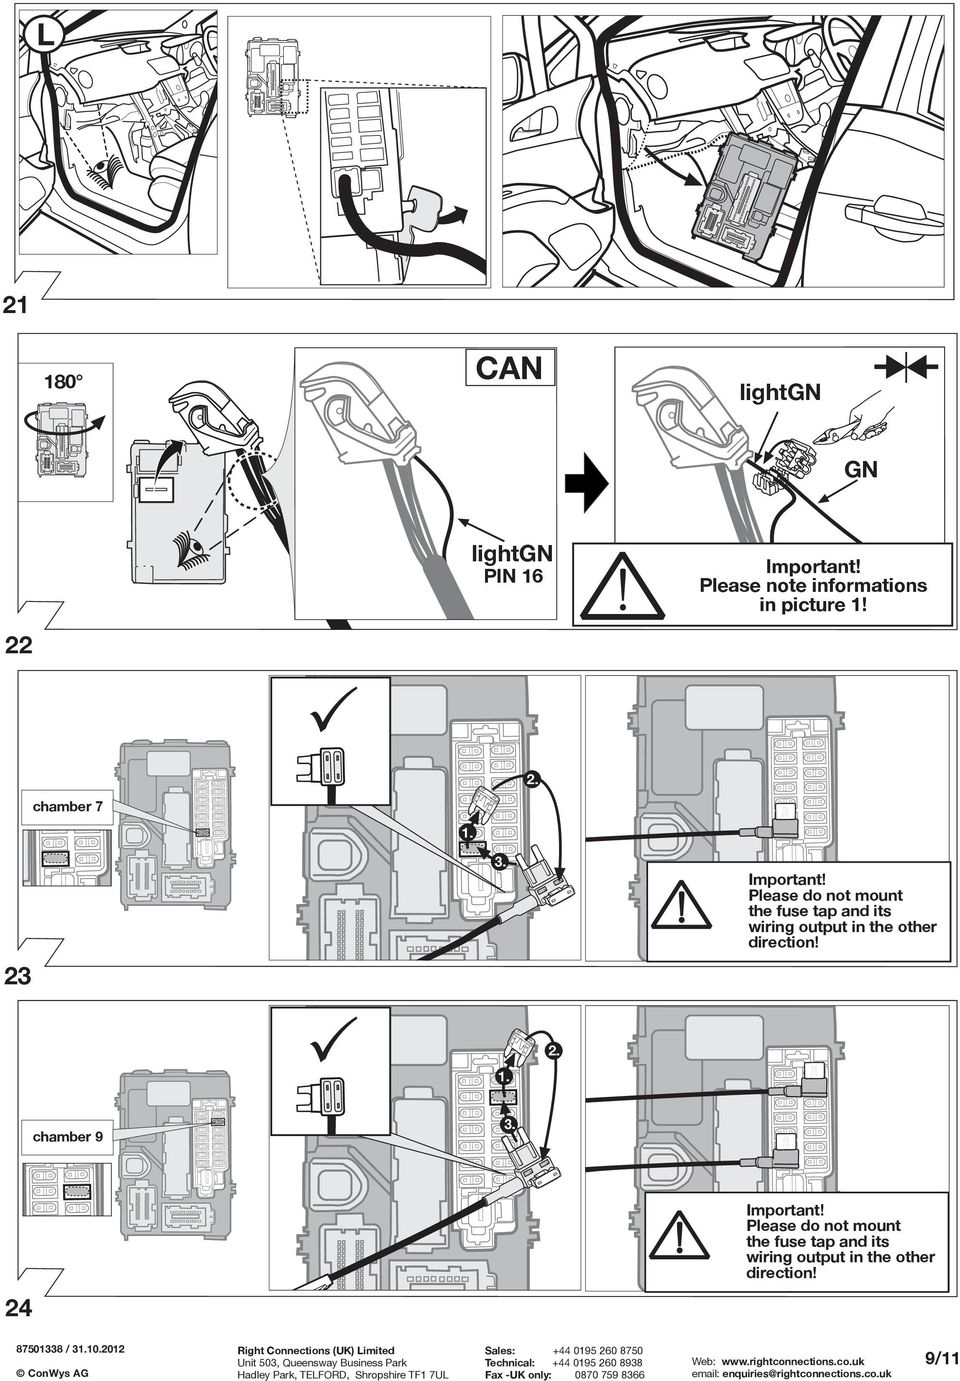 Fitting Instructions Part No Rc Vauxhall Meriva B 06 10 Important Peugeot 207 Towbar Wiring Lease Do Not Mount The Fuse Tap And Its Output In Other